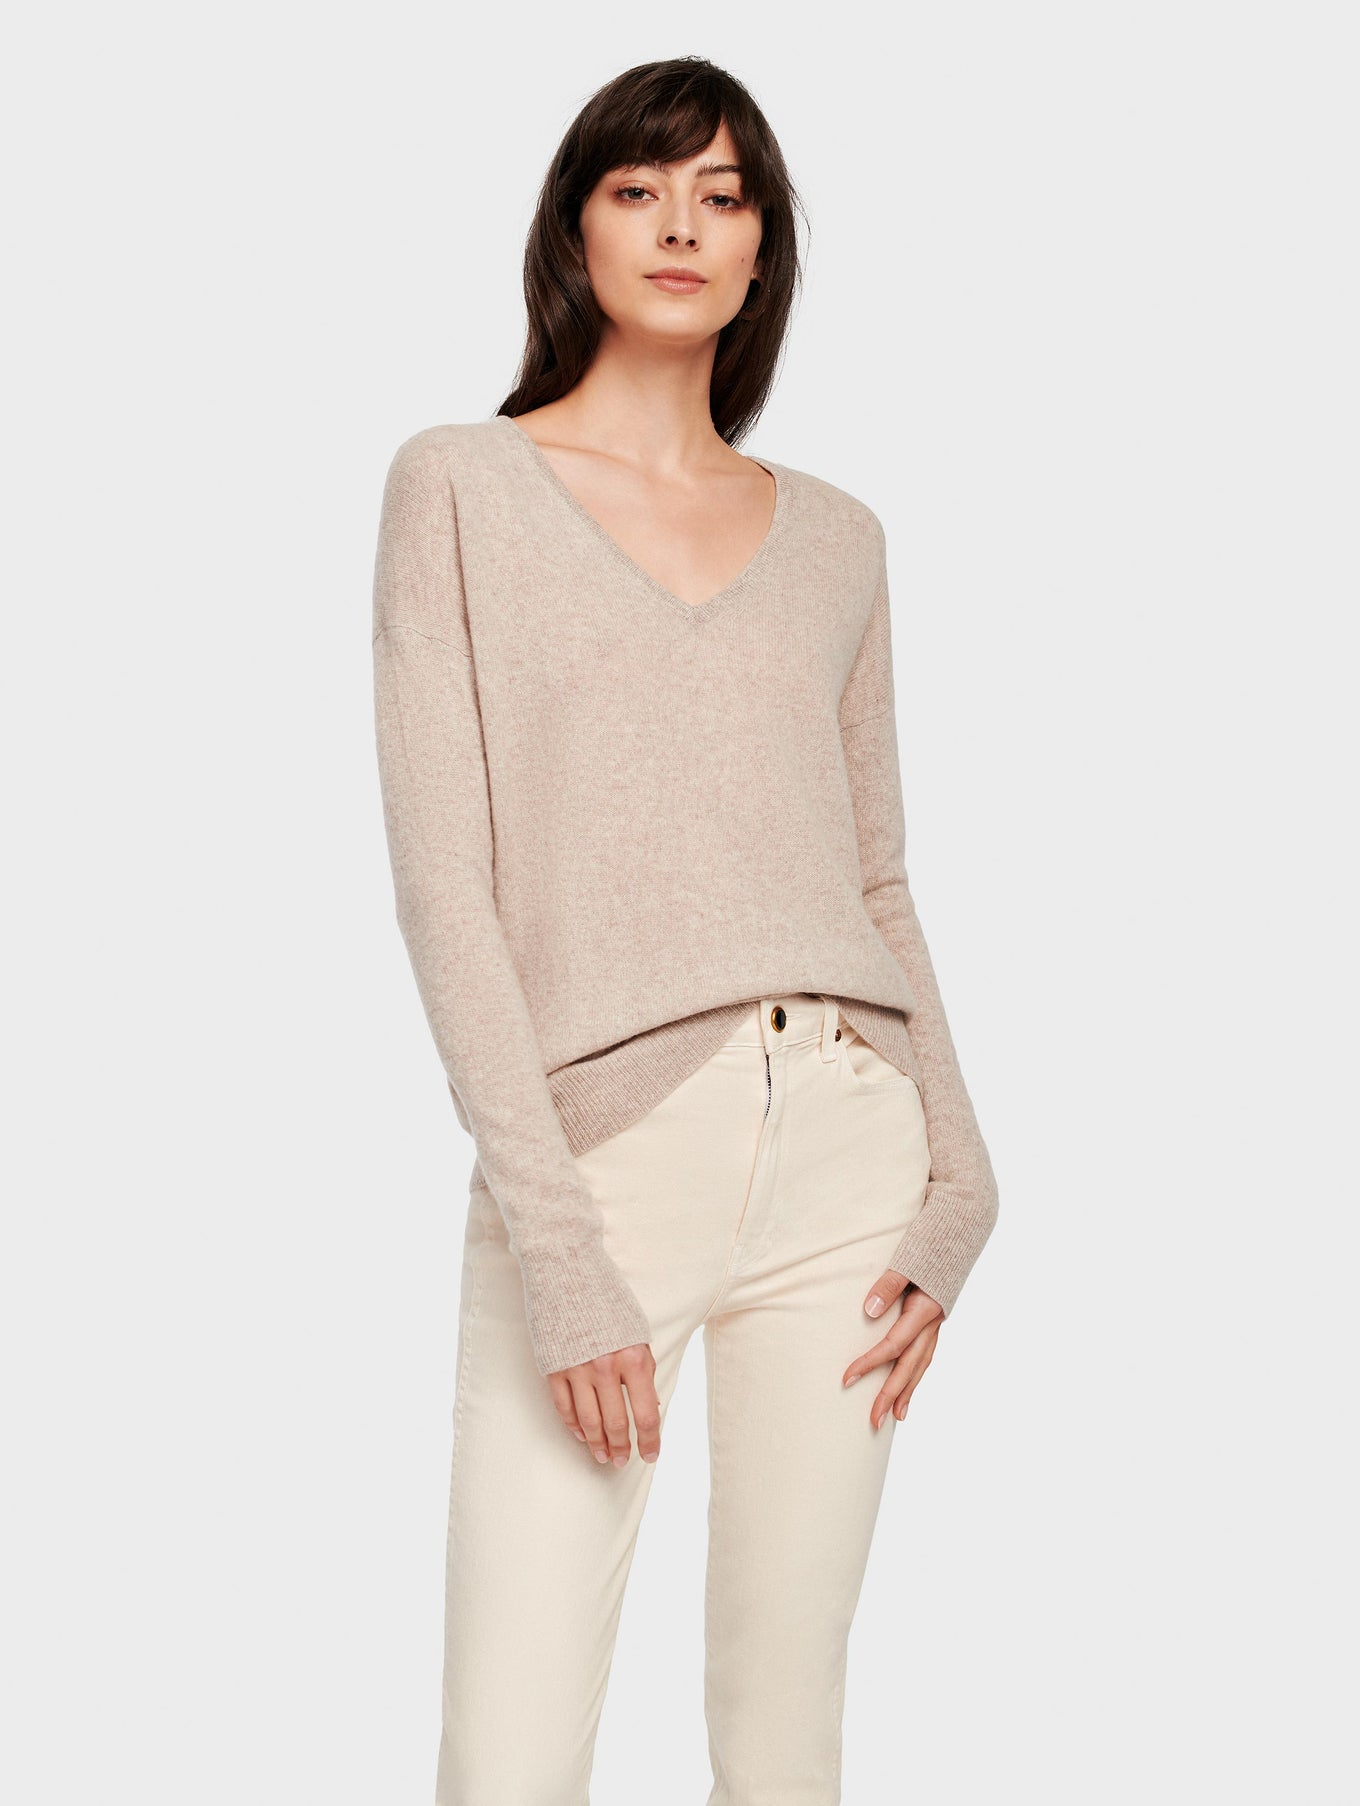 Essential Cashmere V Neck - Sand Wisp Heather - Image 1